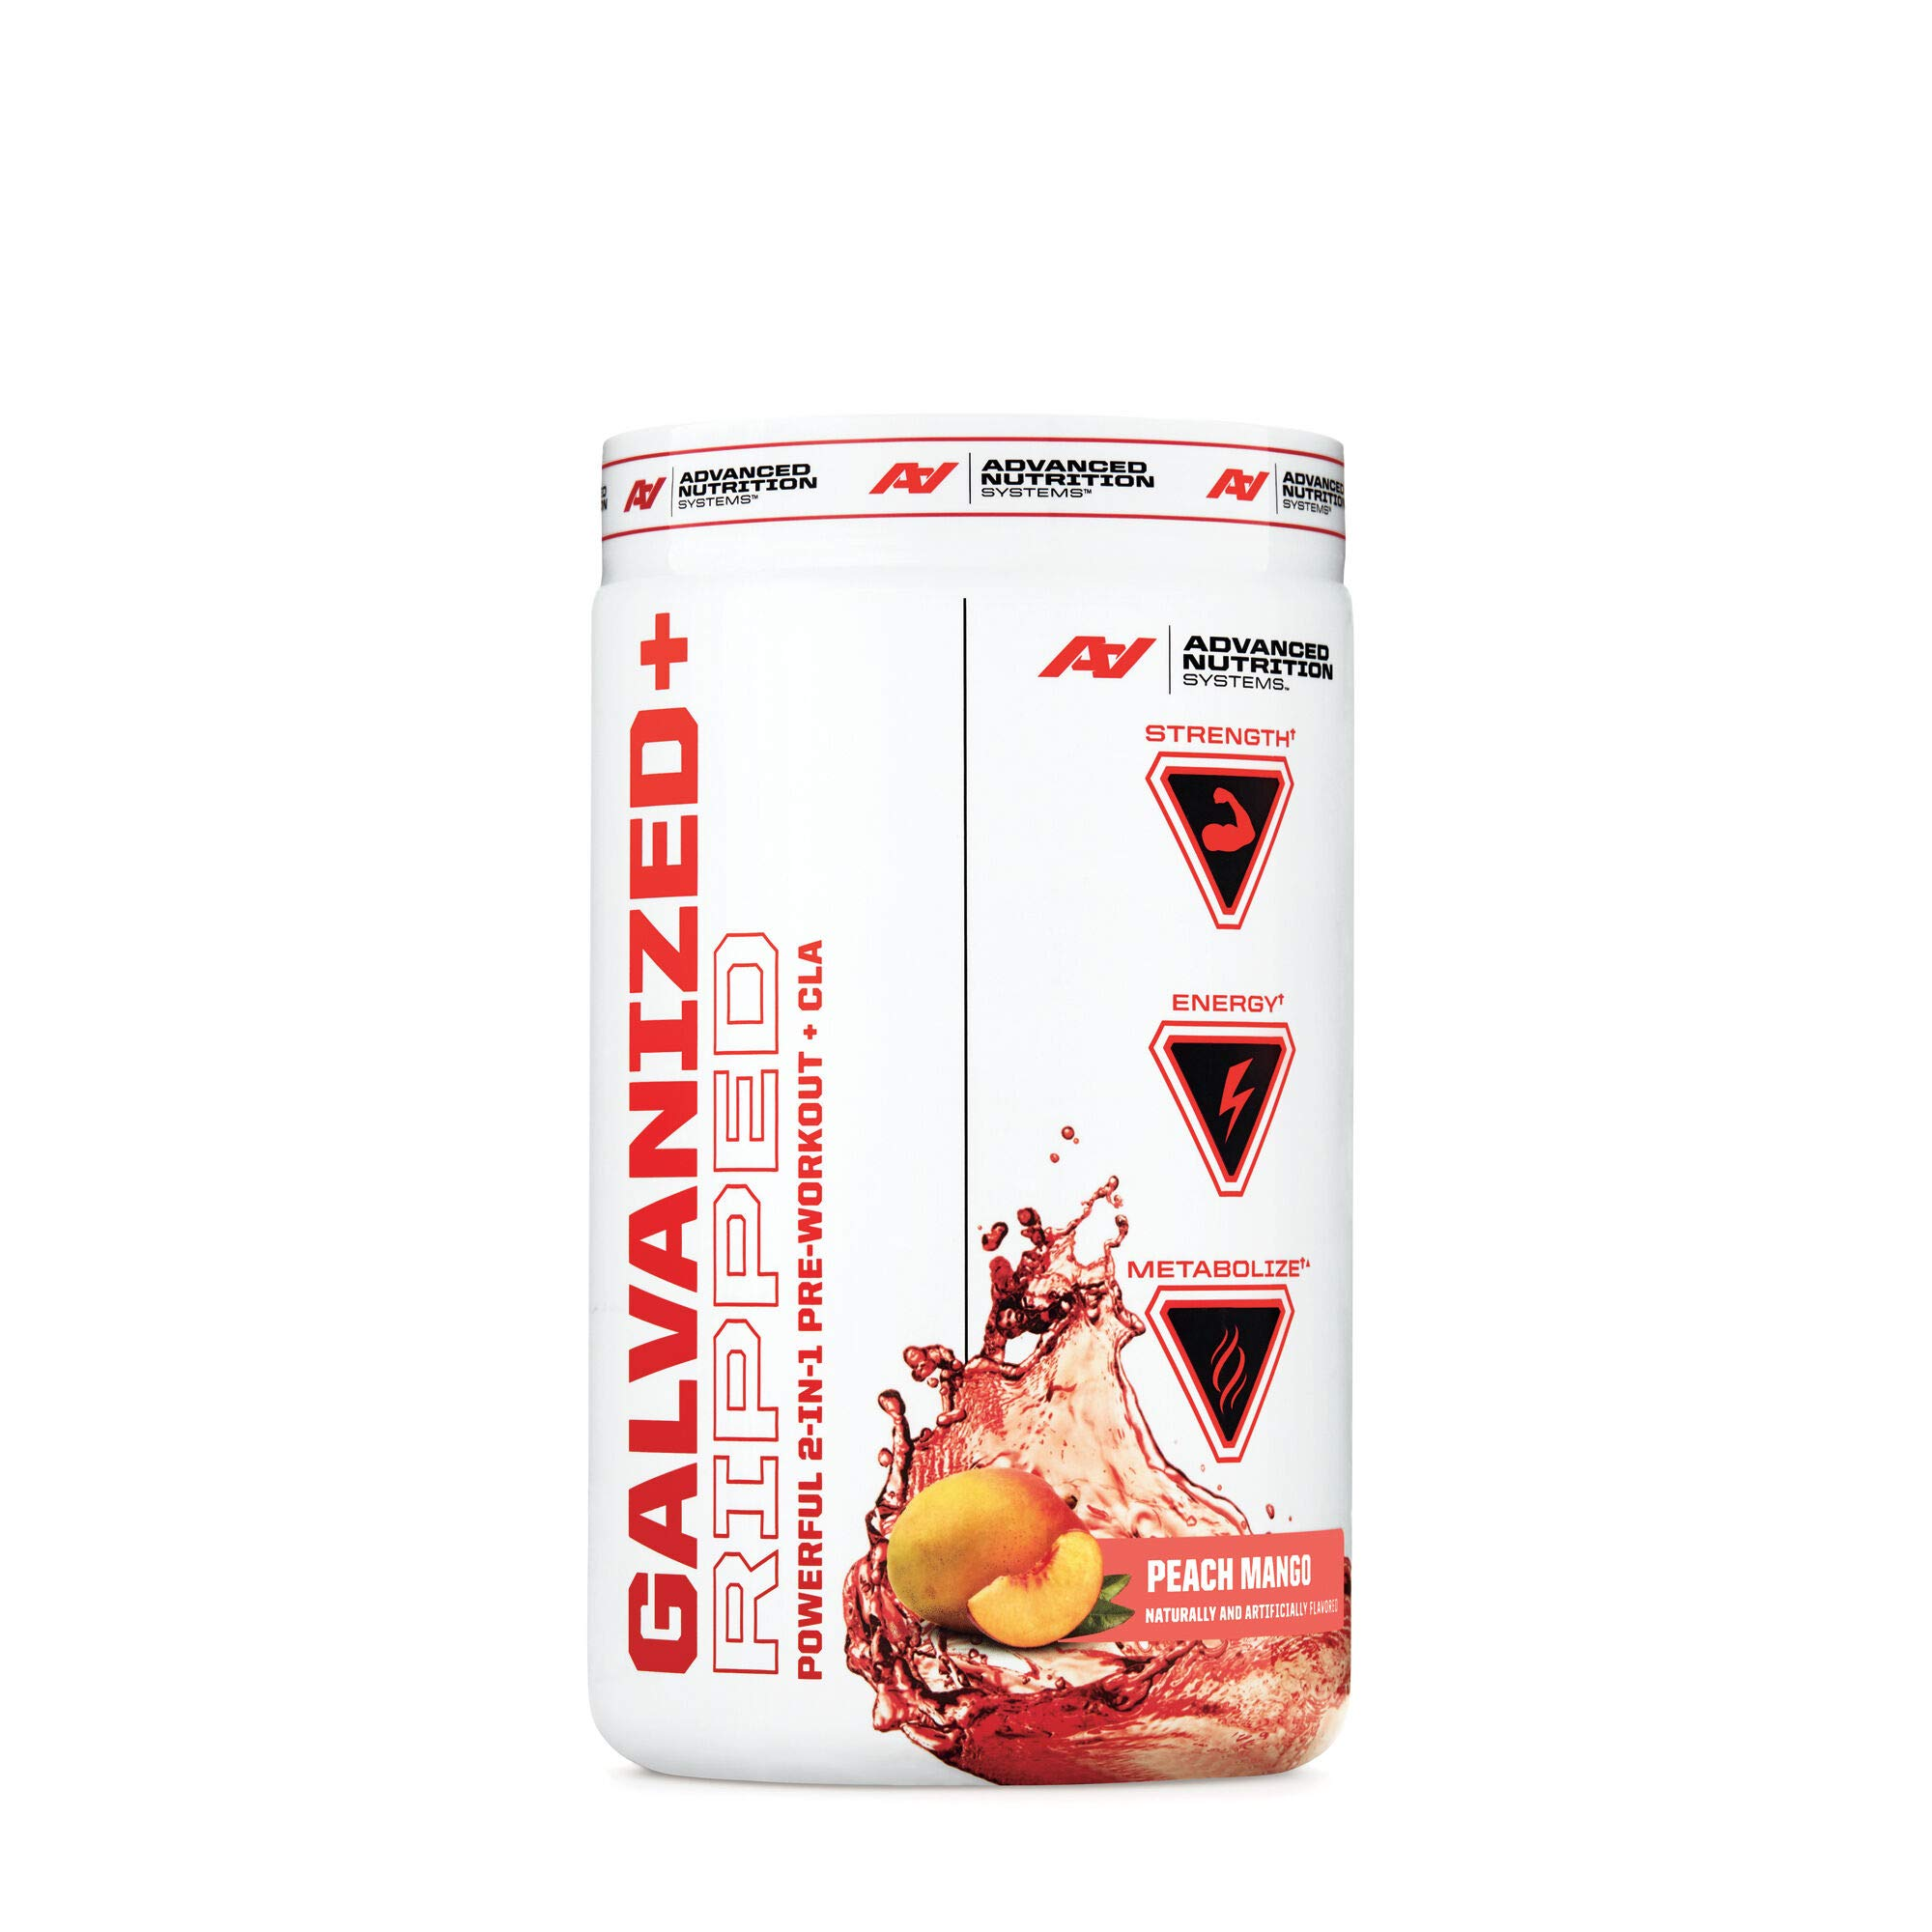 Advanced Nutrition Systems Galvanized Ripped - Peach Mango by Advanced Nutrition SystemsTM